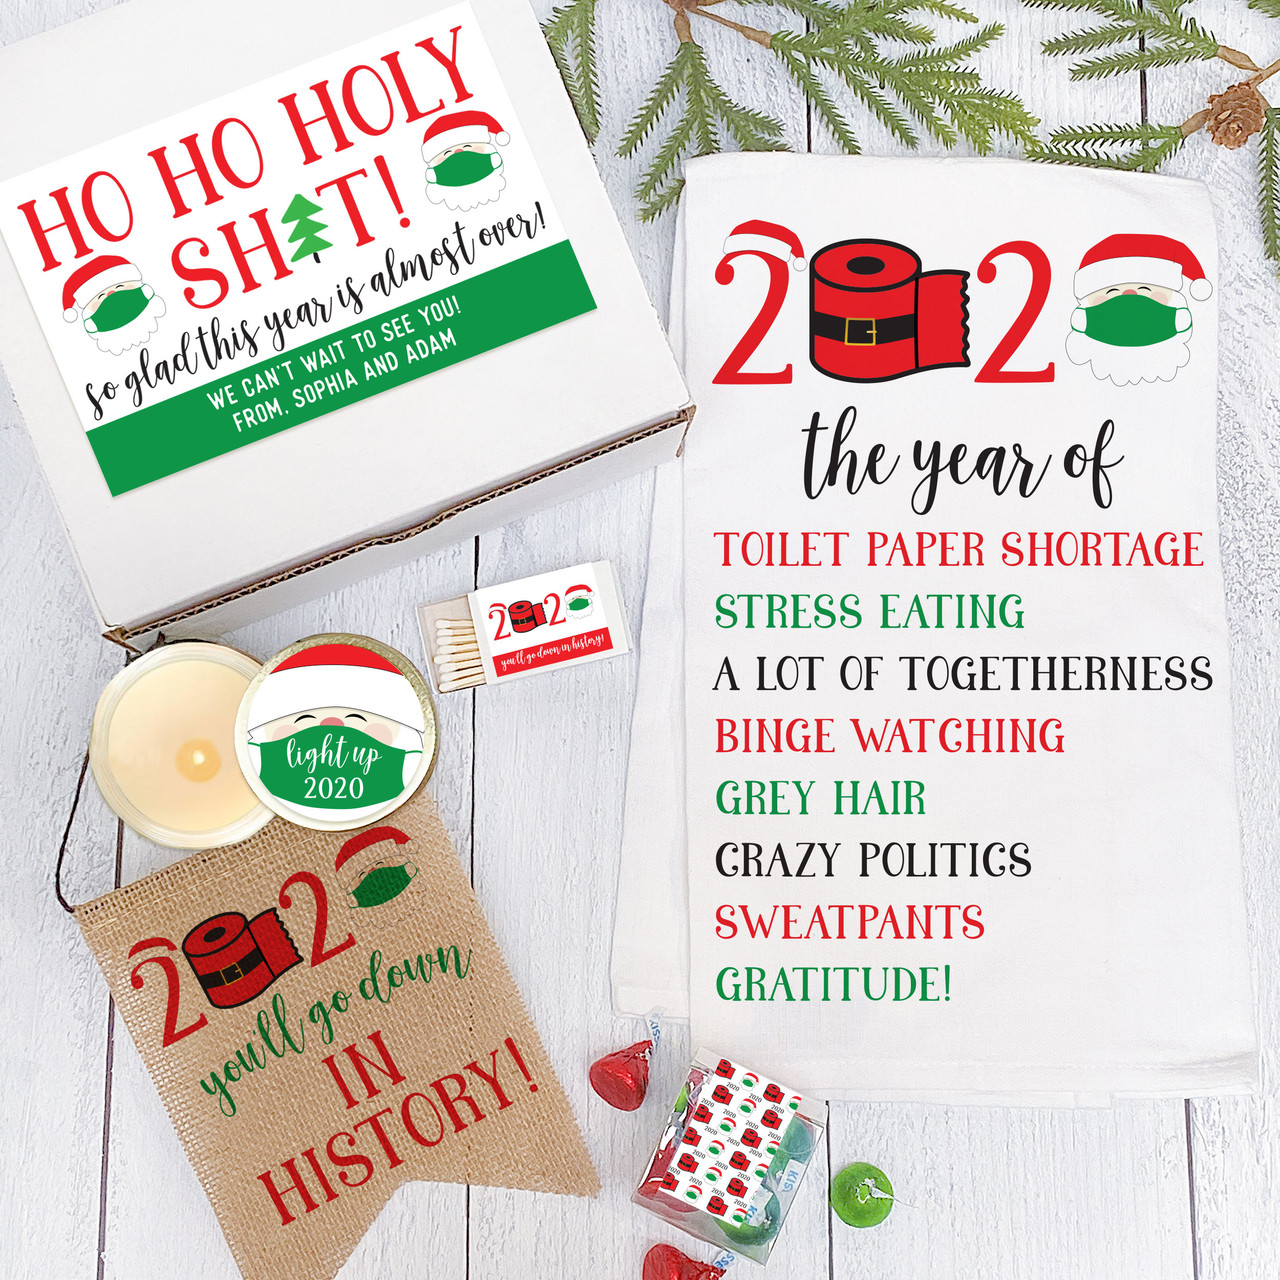 2020 Christmas Gift Box Personalized Ho Ho Holy Shit Gift Box   2020 Christmas Care